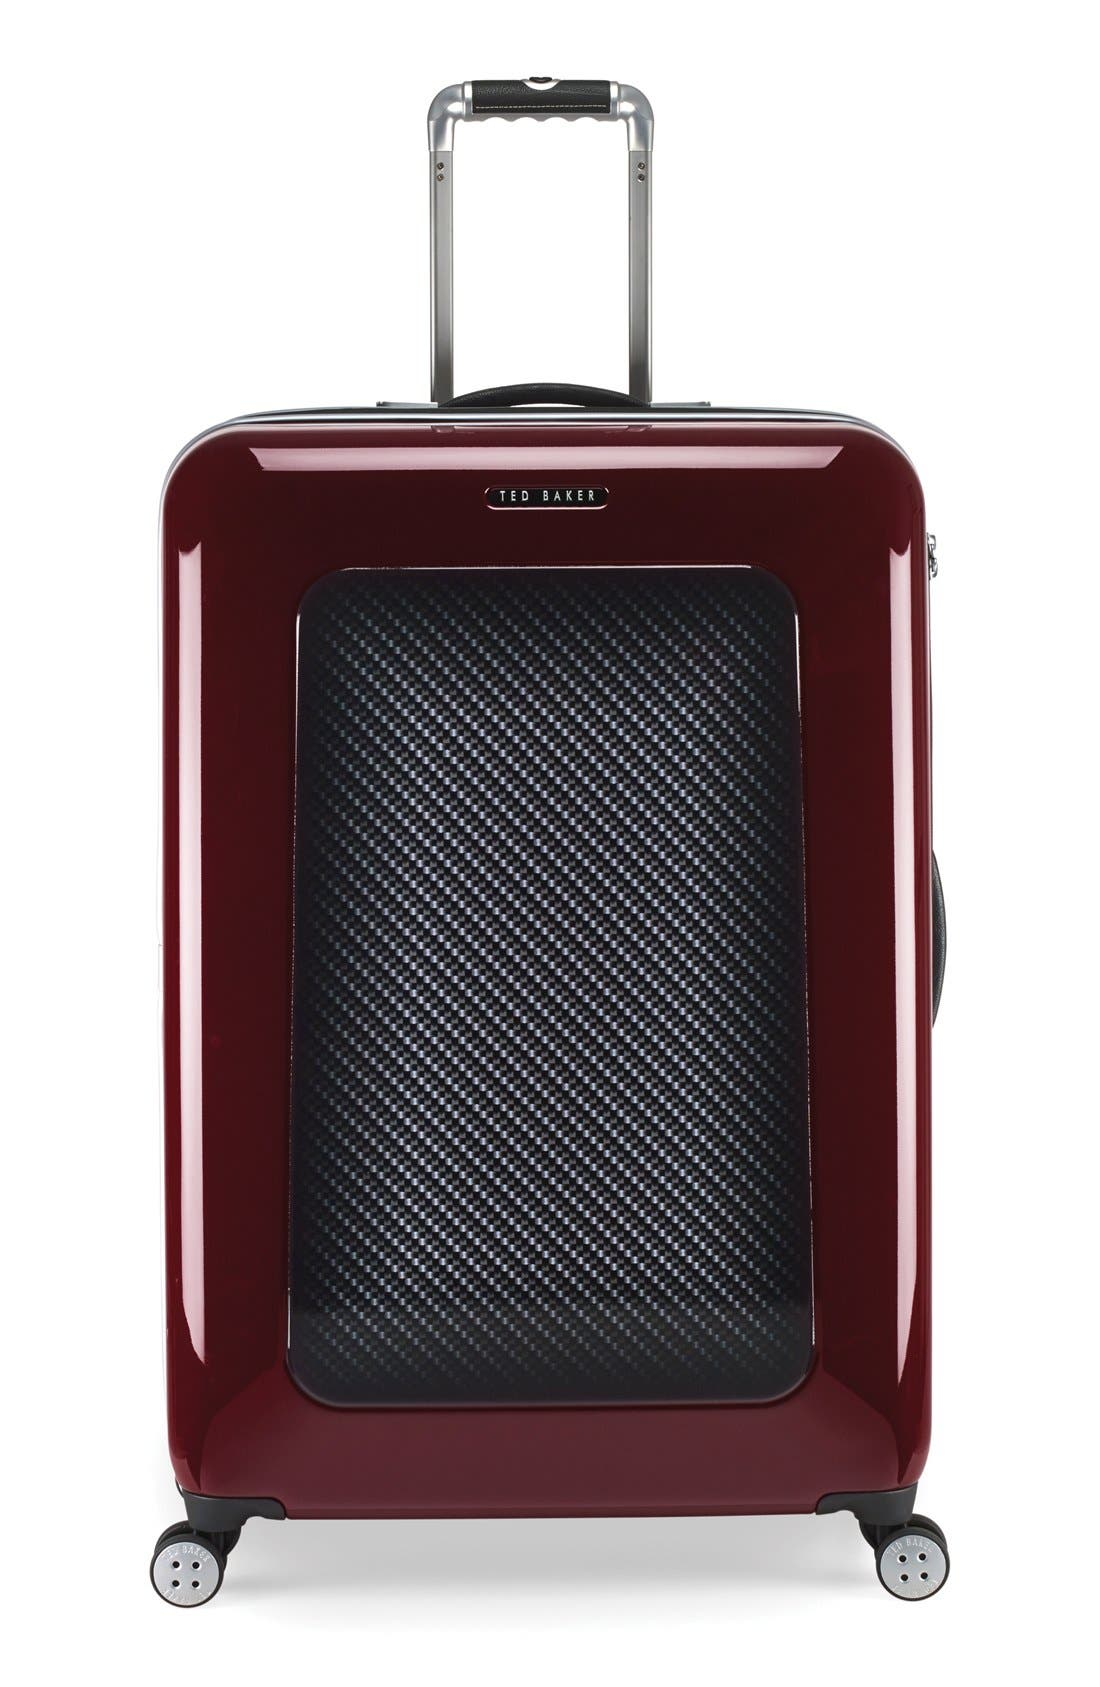 Alternate Image 1 Selected - Ted Baker London 'Large Burgundy' Four Wheel Suitcase (31 Inch)